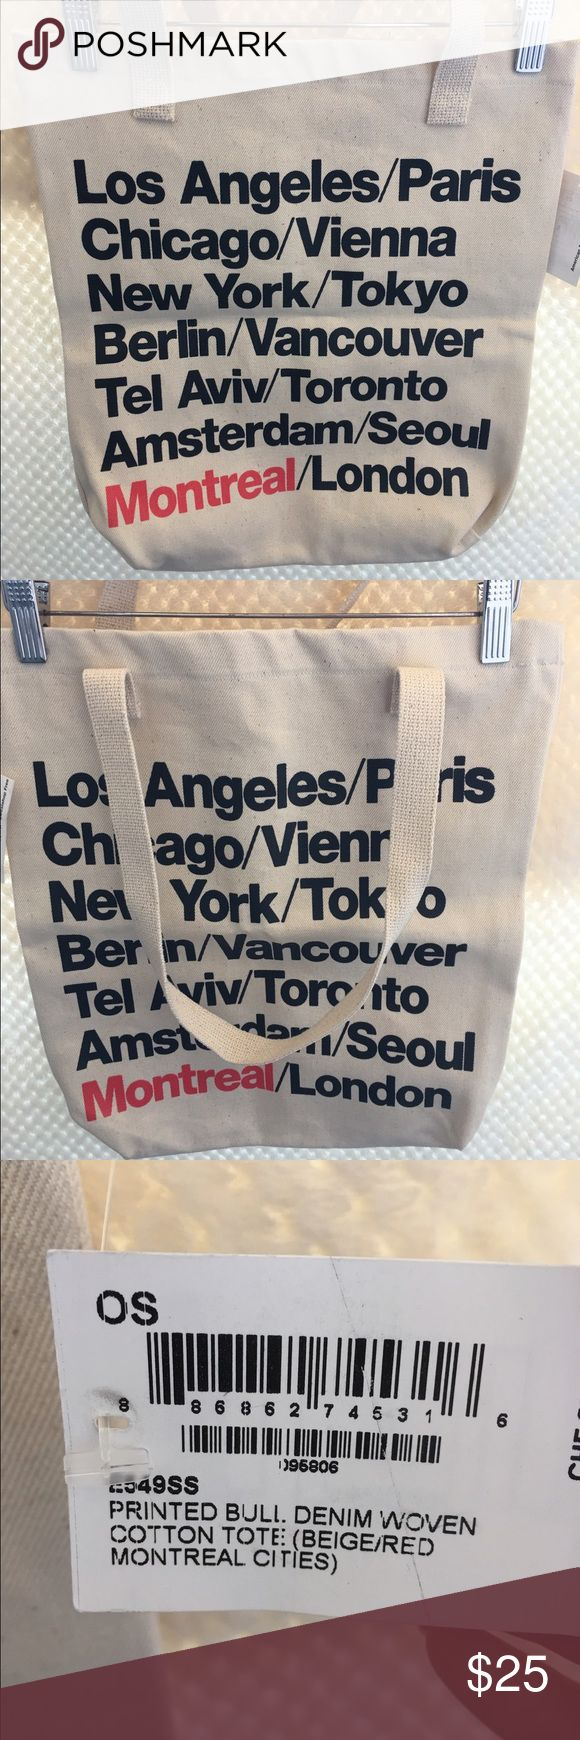 NWT American Apparel cities 👜 tote. NWT American Apparel printed bull denim woven cotton cities tote. Approx 14x16 American Apparel Bags Totes